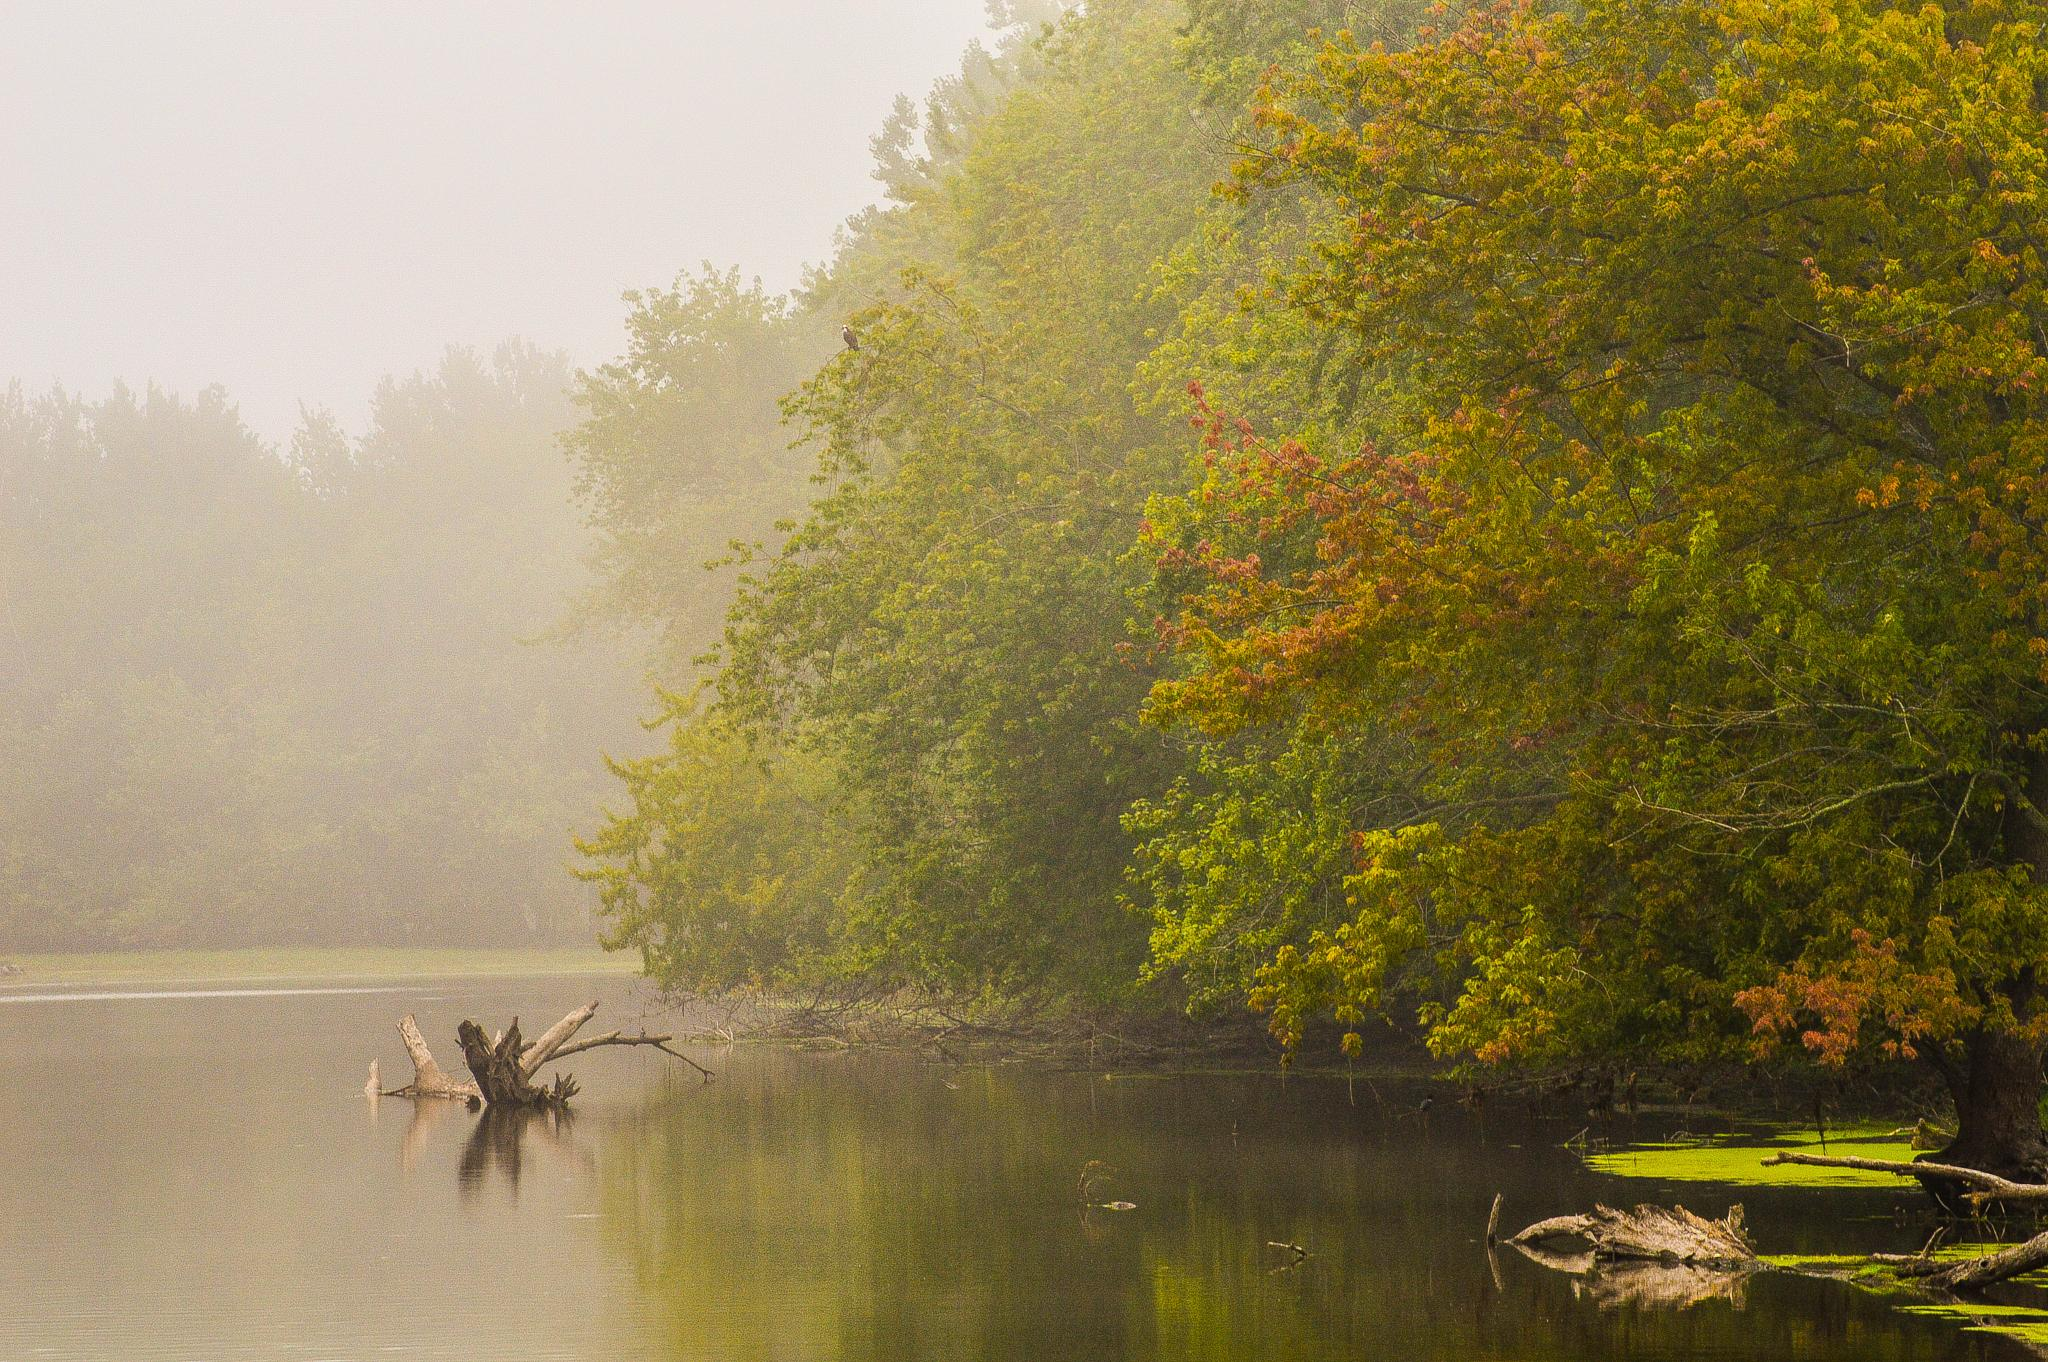 foggy lake summer morning on the river by jason.lockhart.9